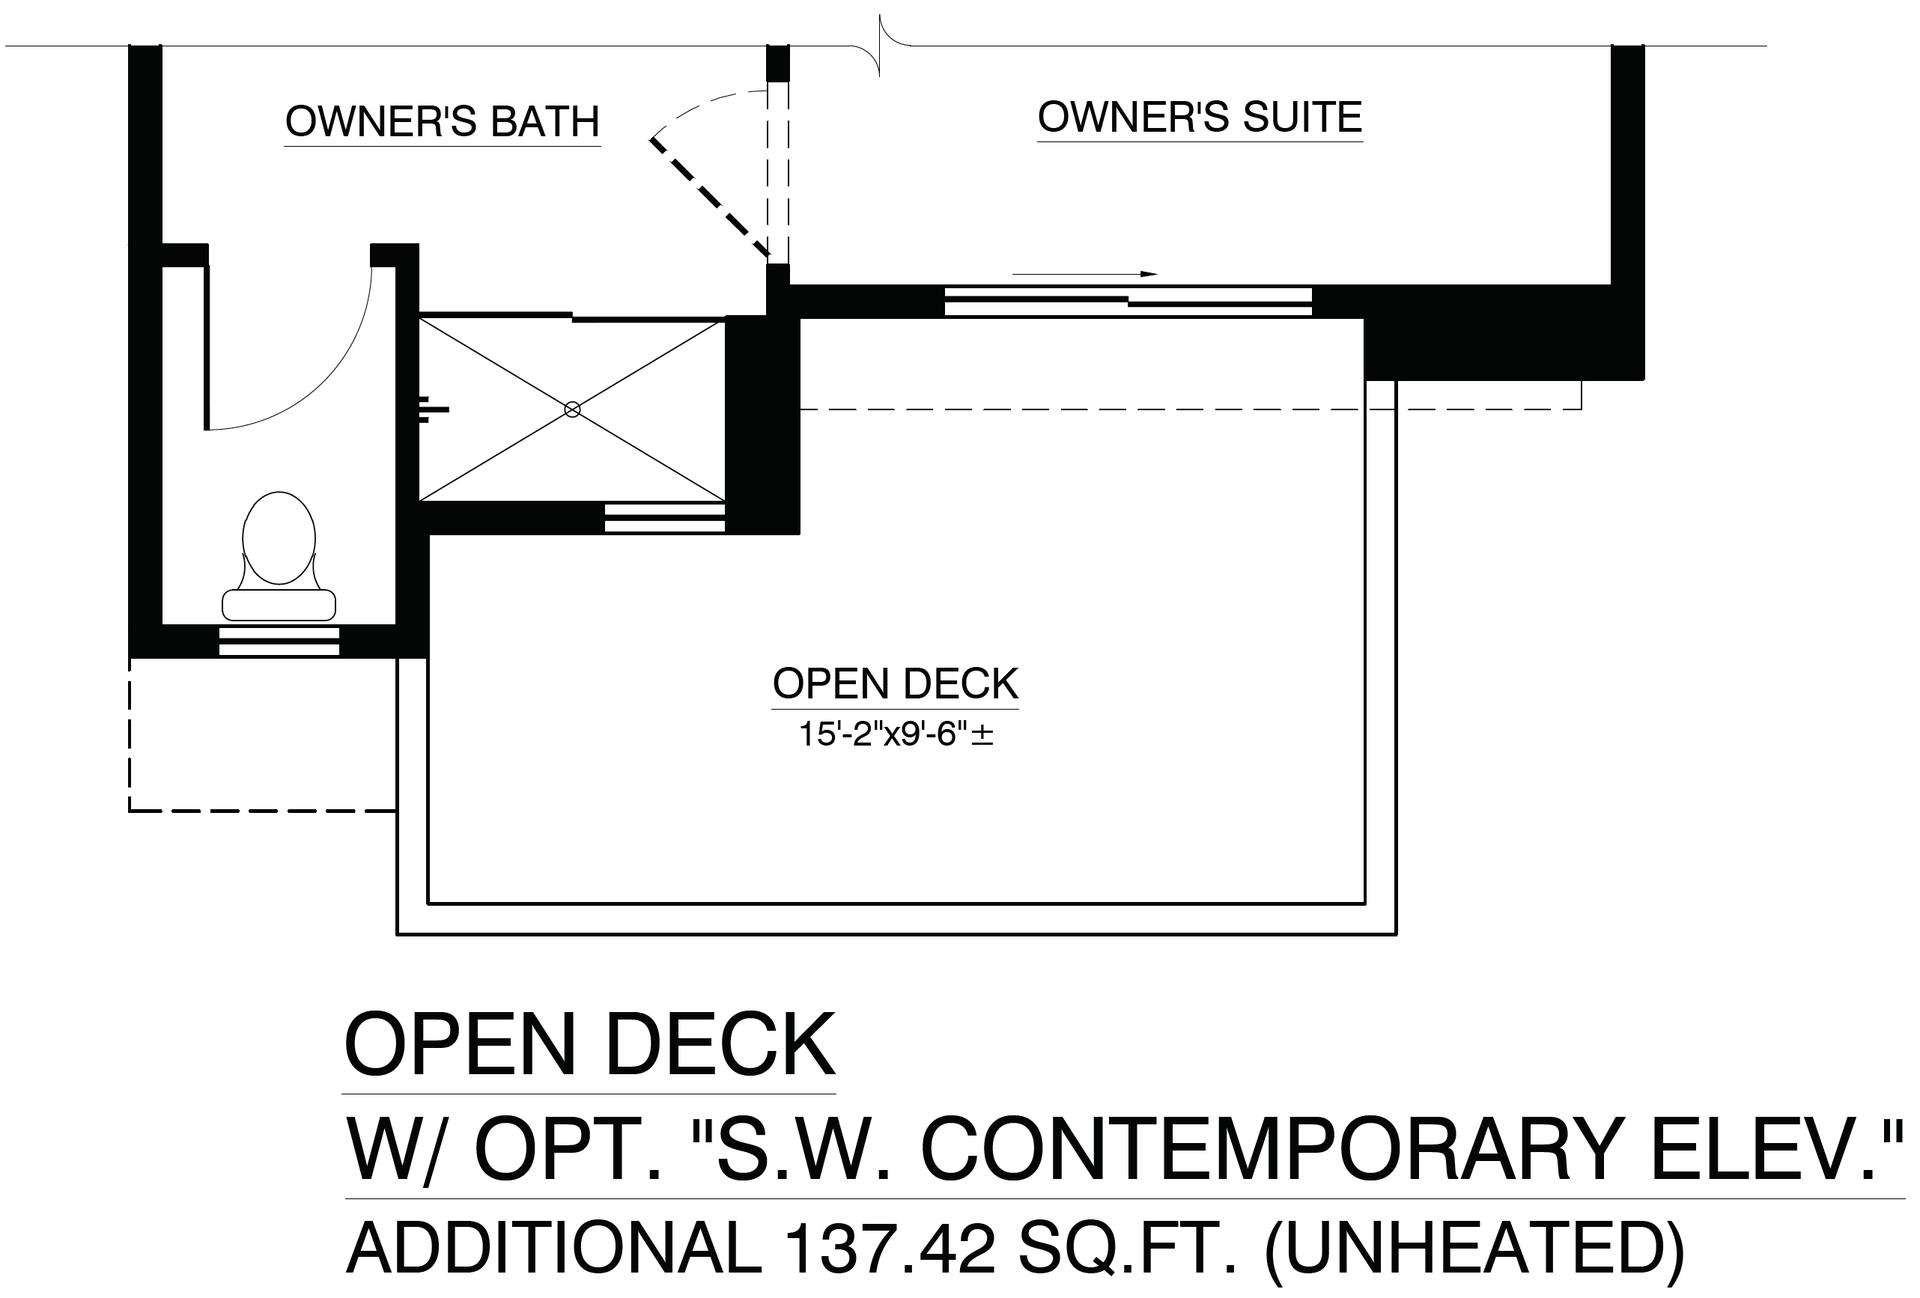 Open Deck with Contemporary Elevation